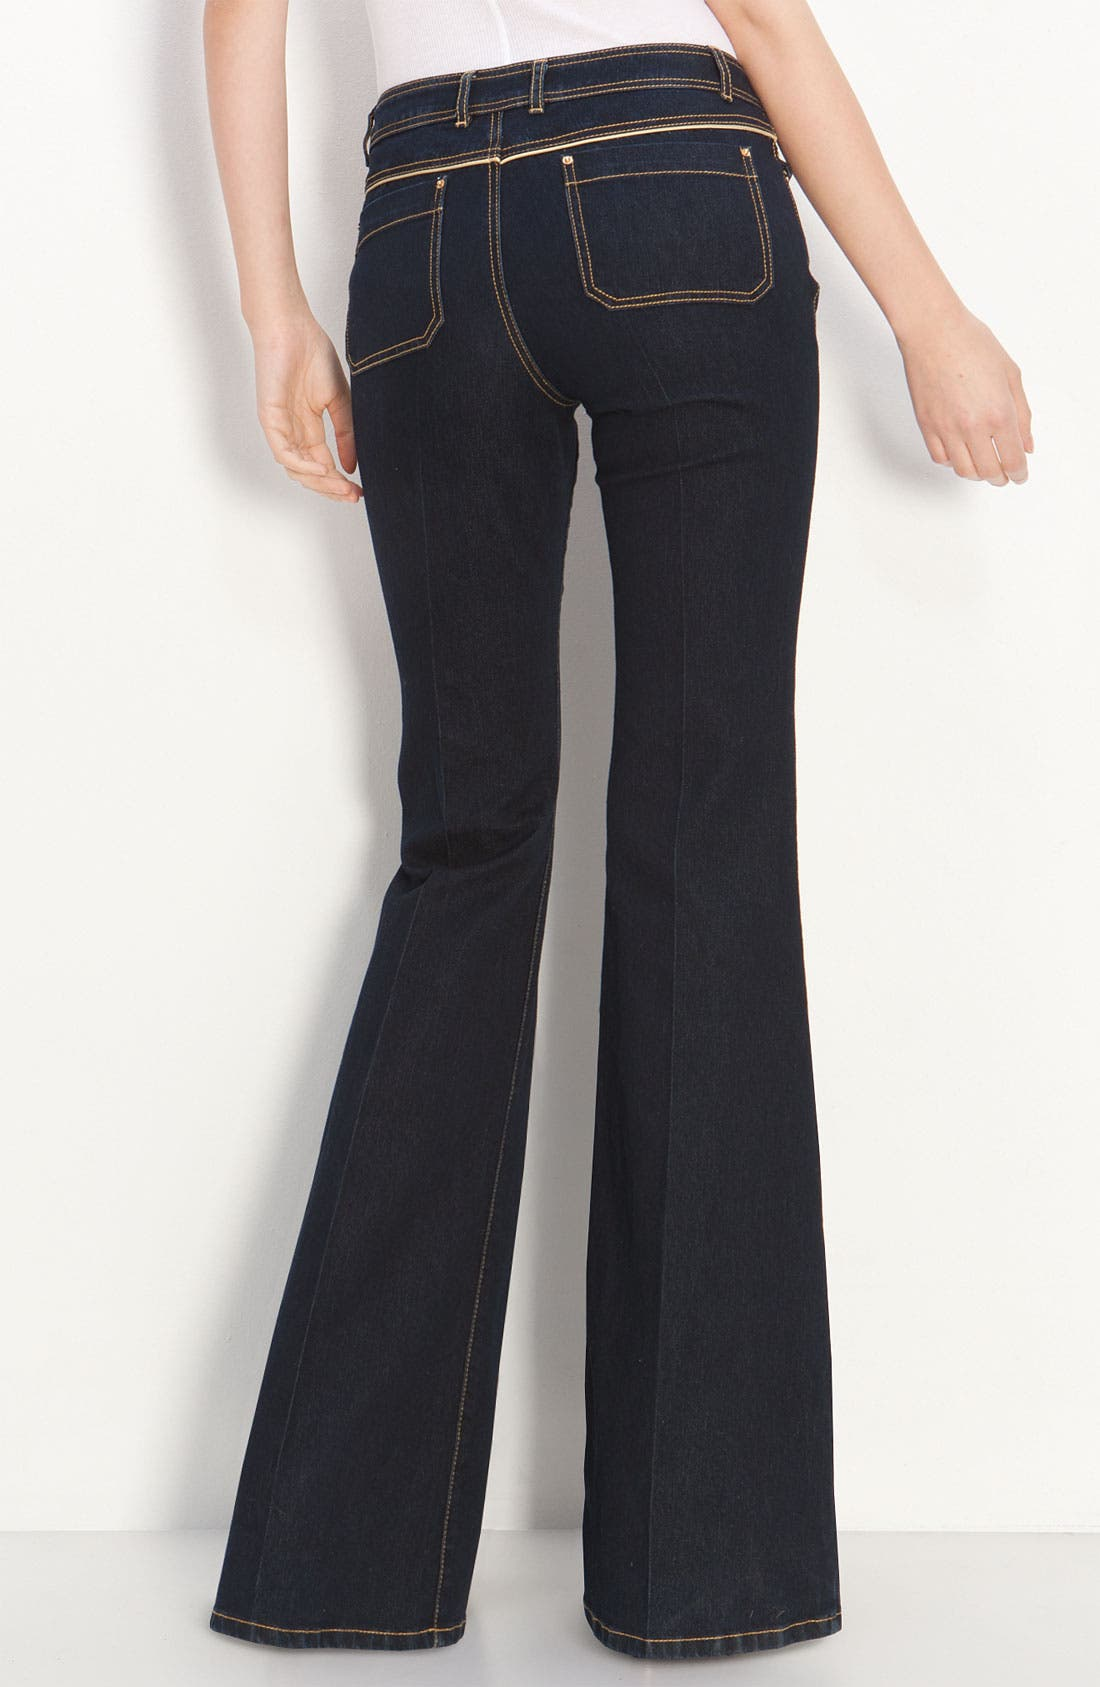 Alternate Image 1 Selected - Rachel Zoe Piped Flare Leg Jeans (Long)